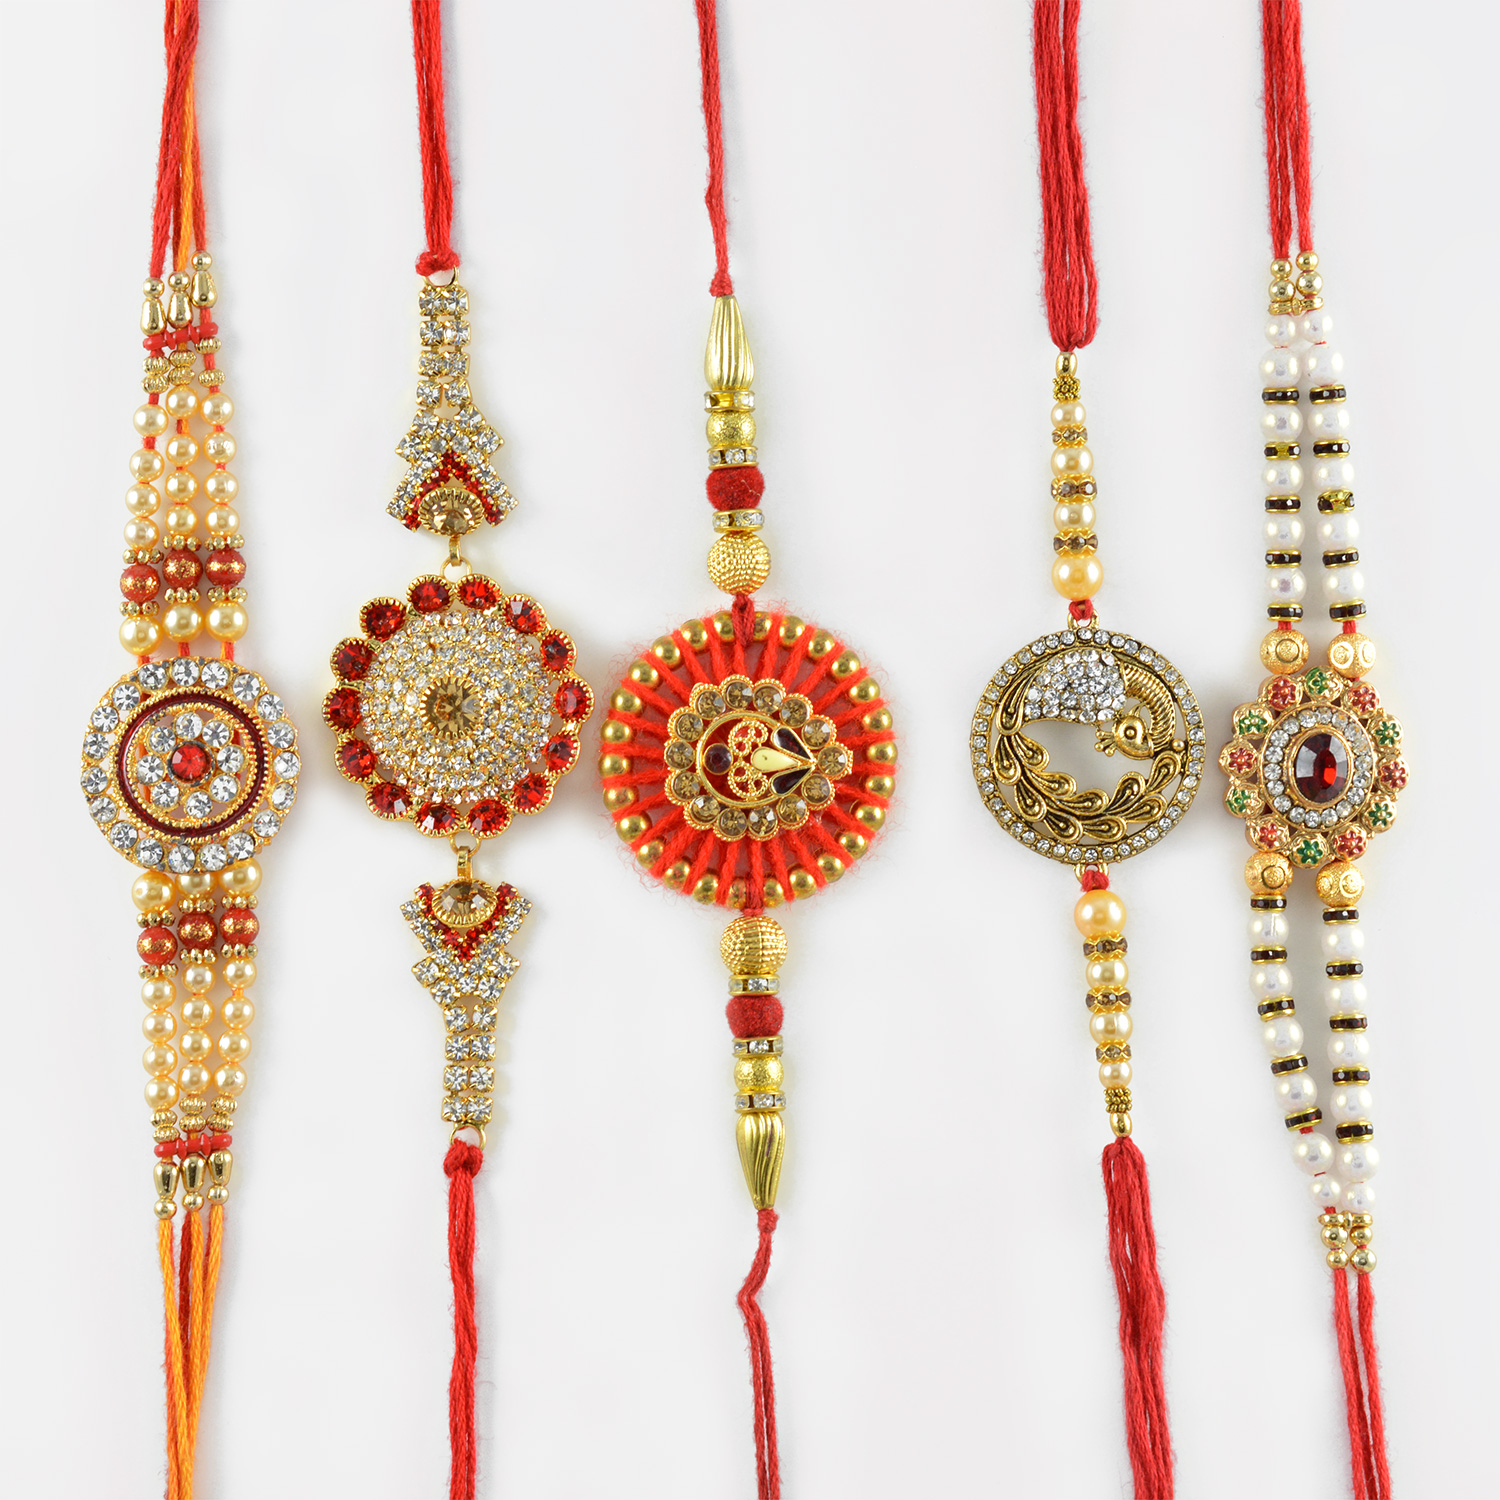 Classy Diamond Studded Peacock Feathers Diamond Rakhi Set